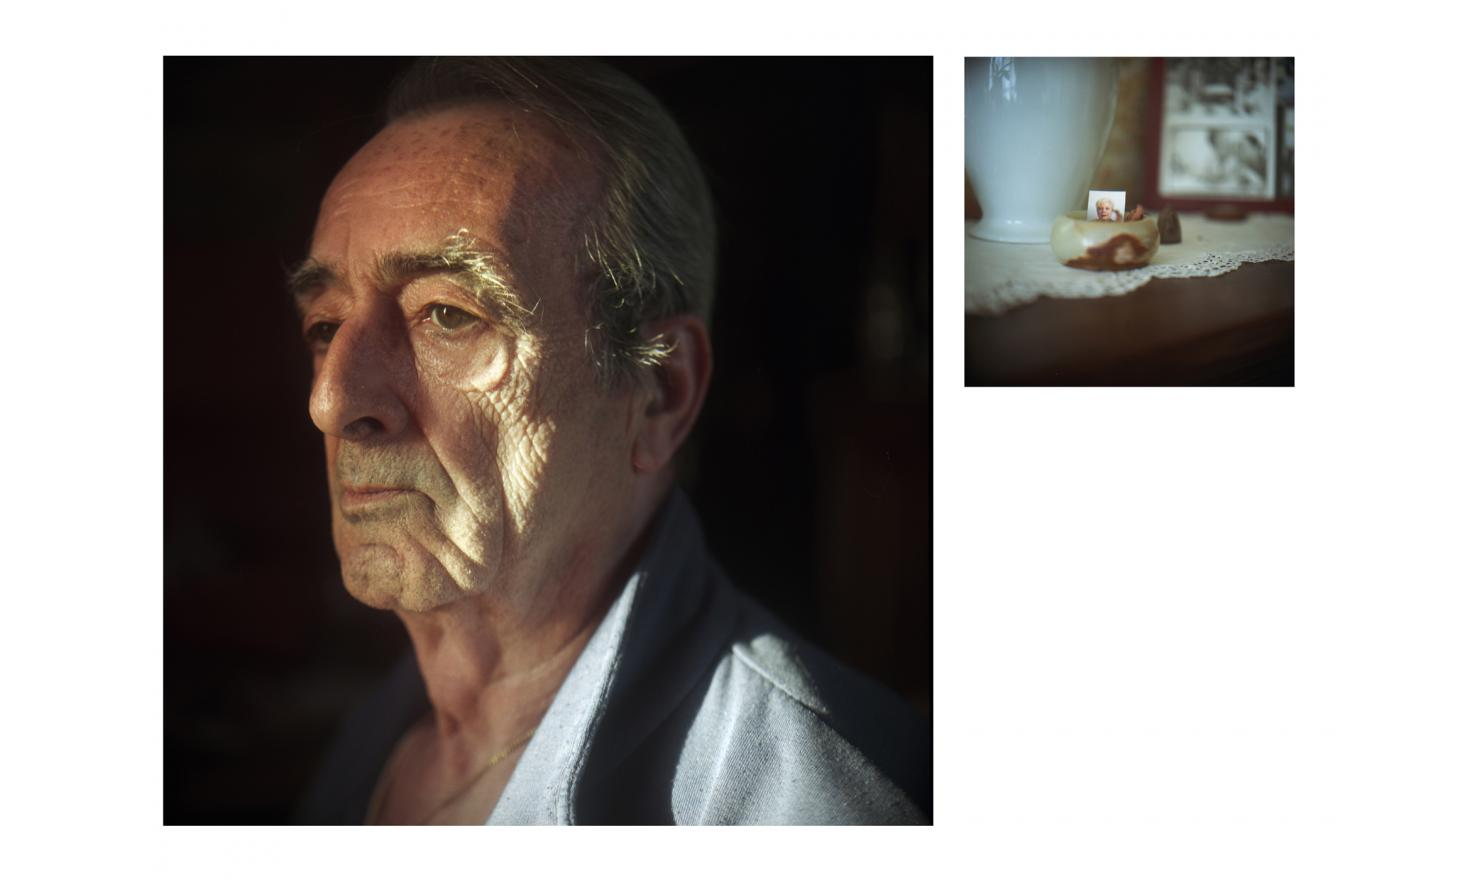 My parents, Robert Dherbeys (1944-) and a portrait of Jacqueline Dherbeys at home (1940-2007) April 2015